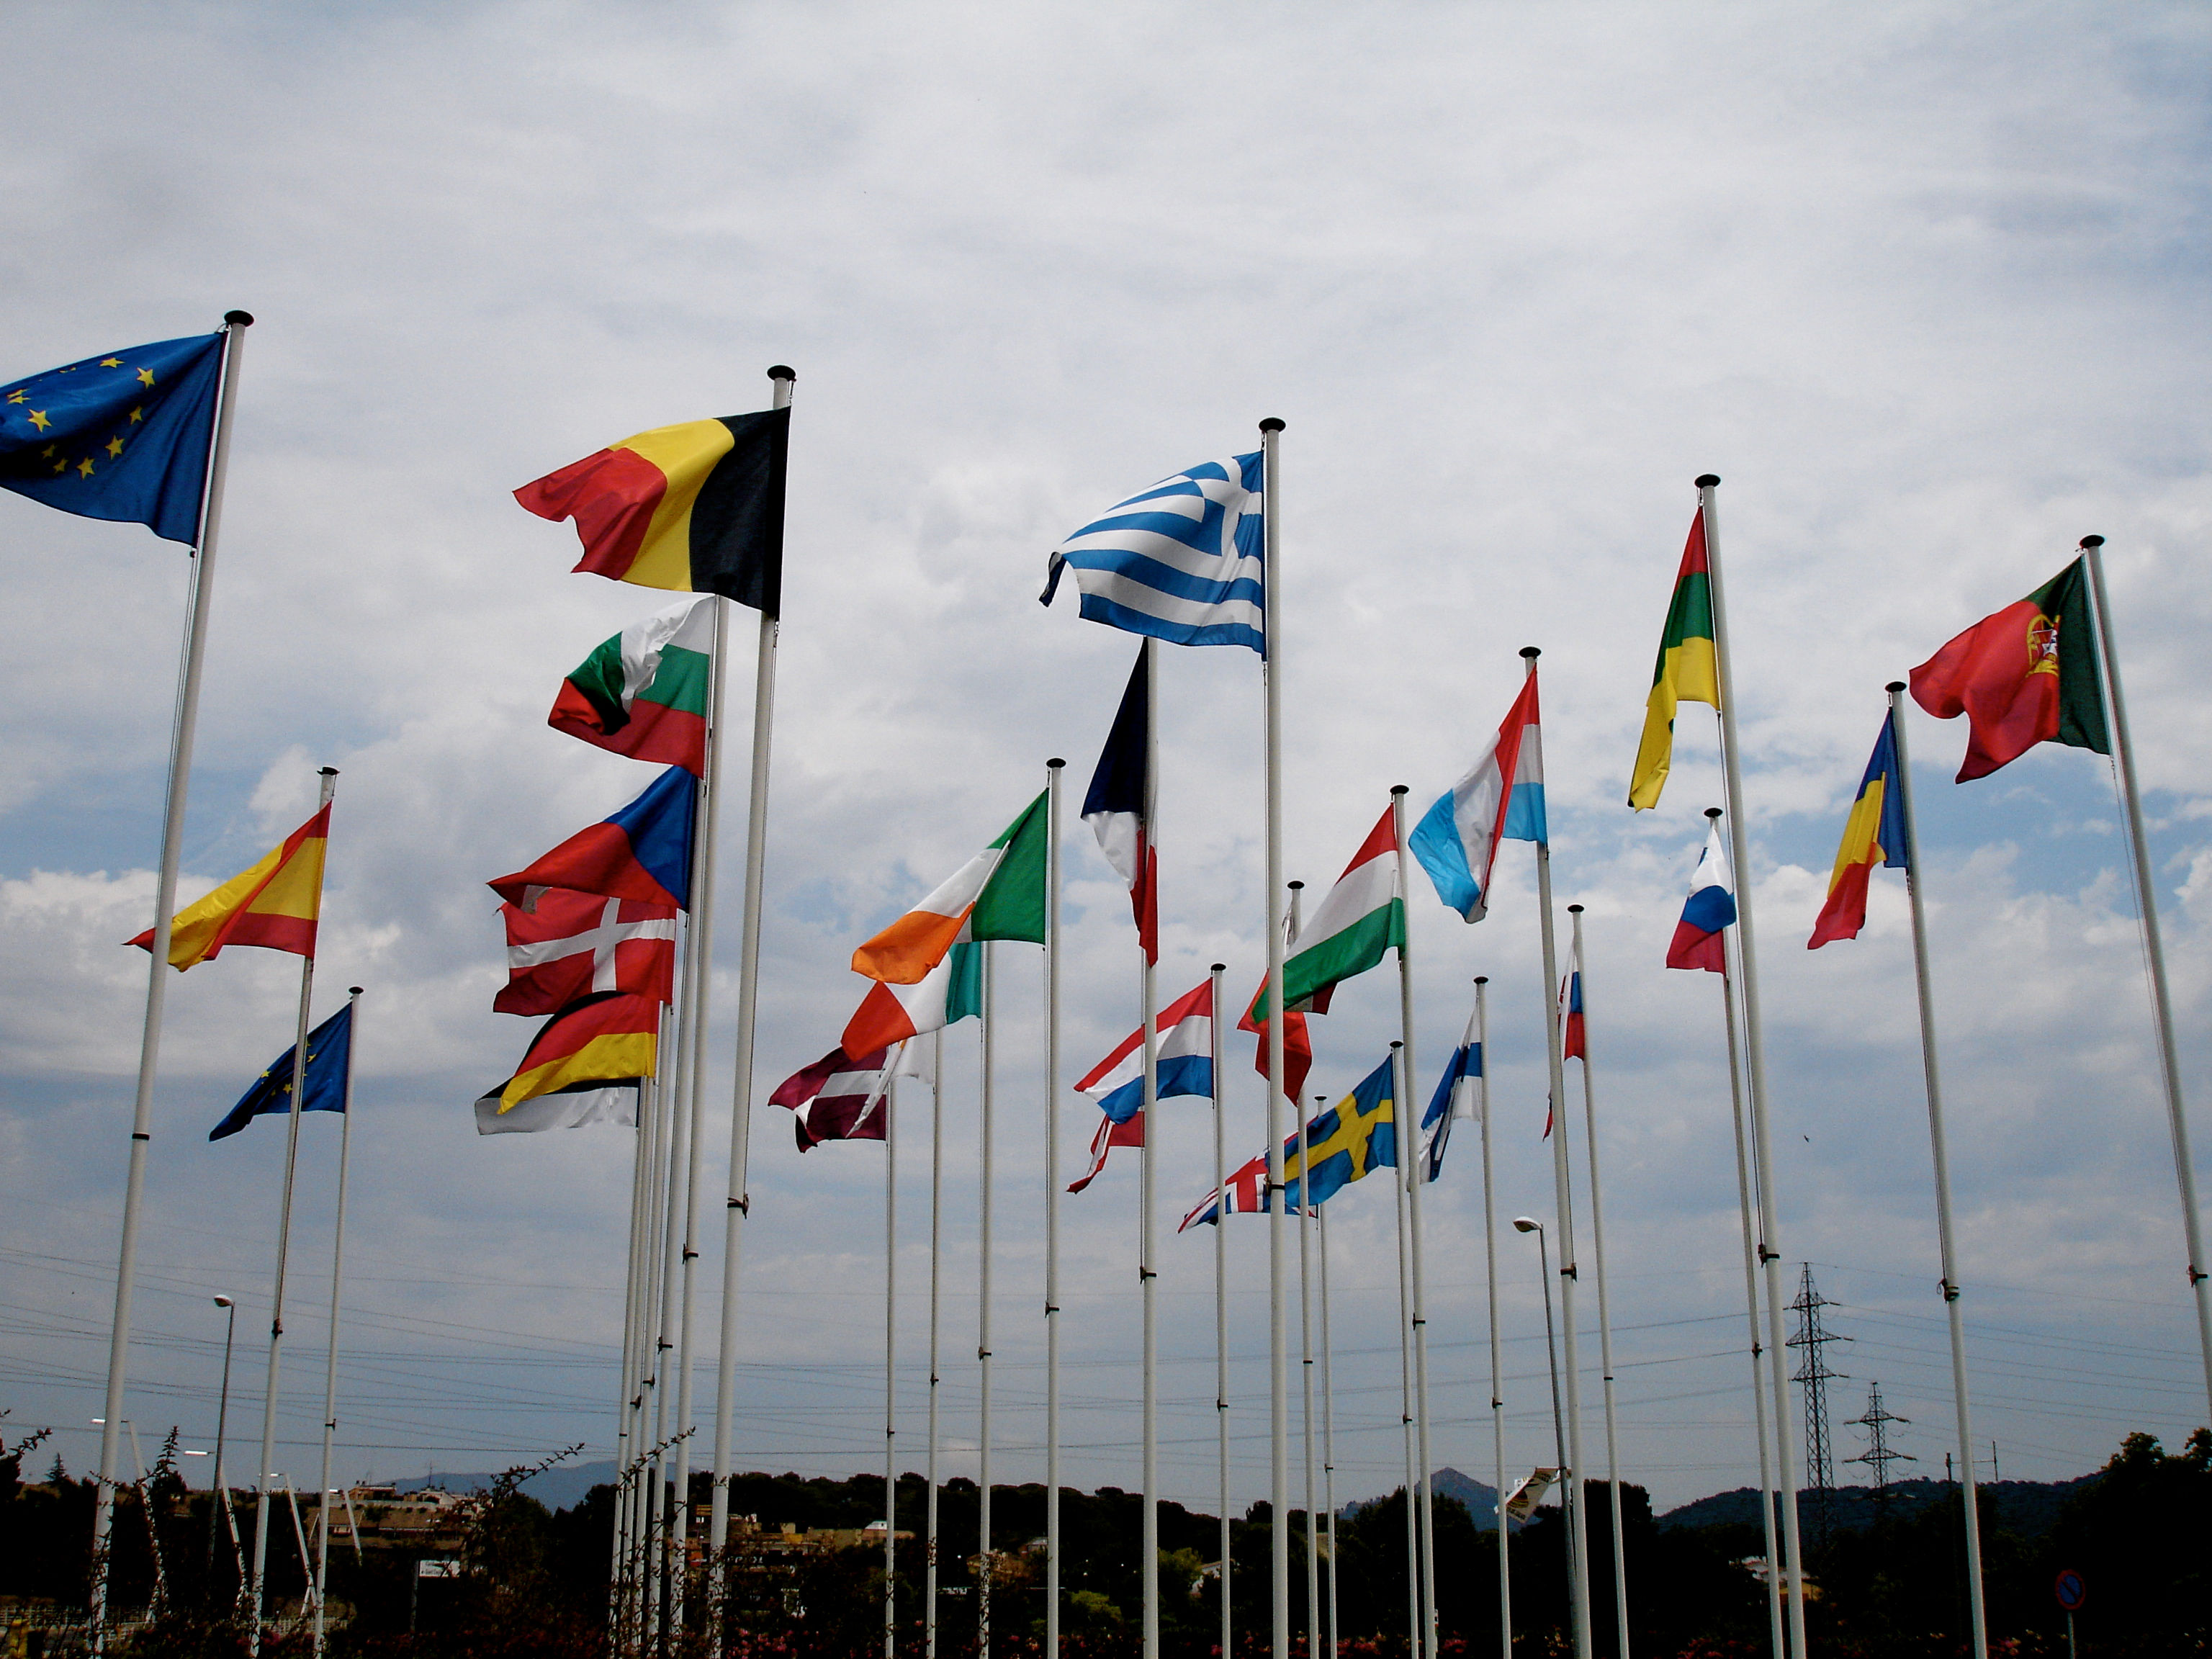 Flags outside the Parc Techologic - Photo by borkur.net on Creative Common